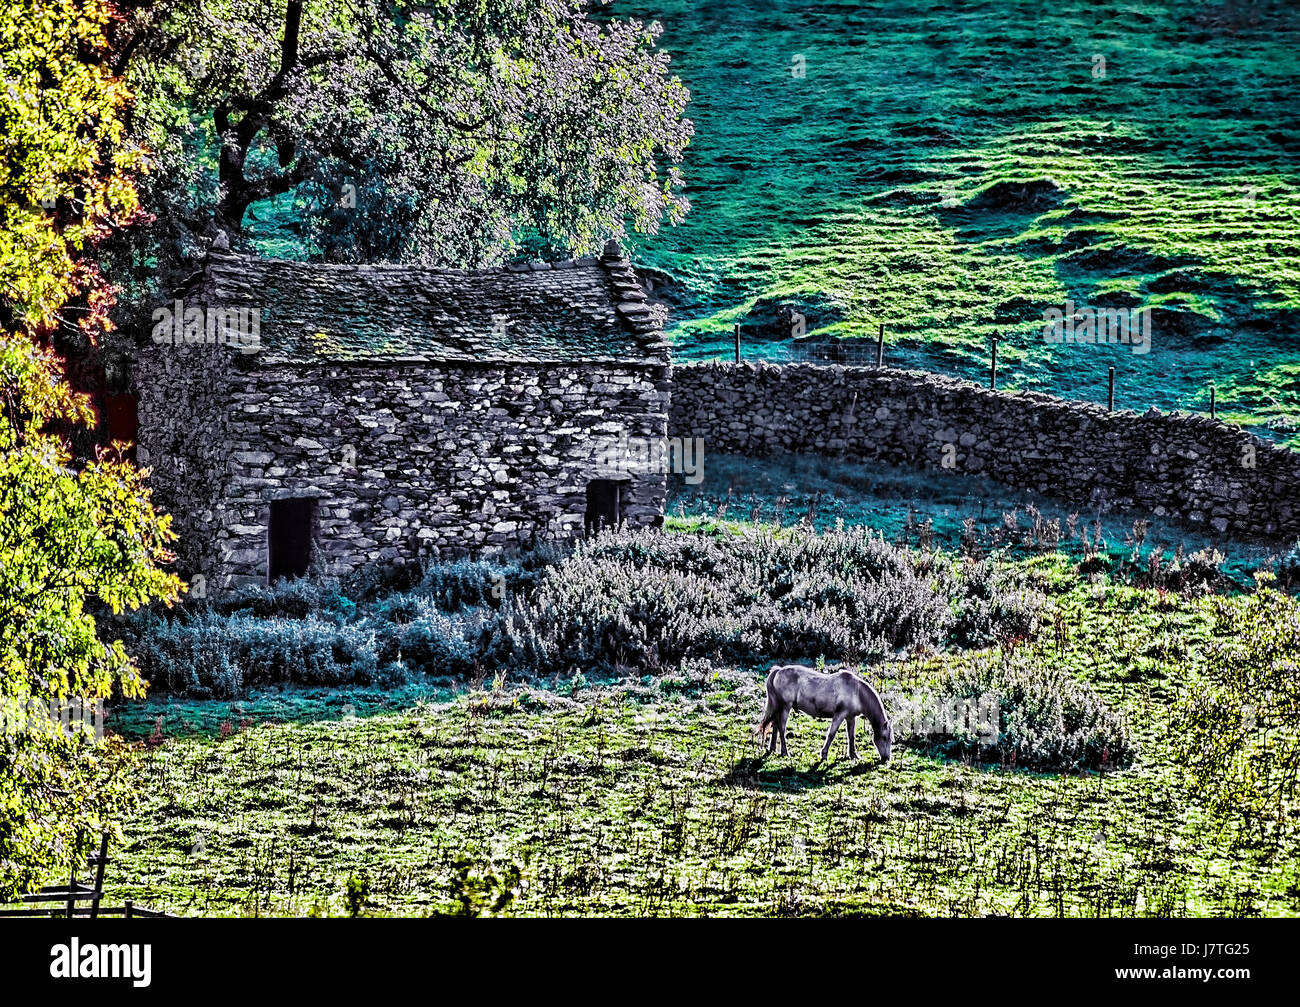 Pictorial Art-Image The English Lake District - Stock Image